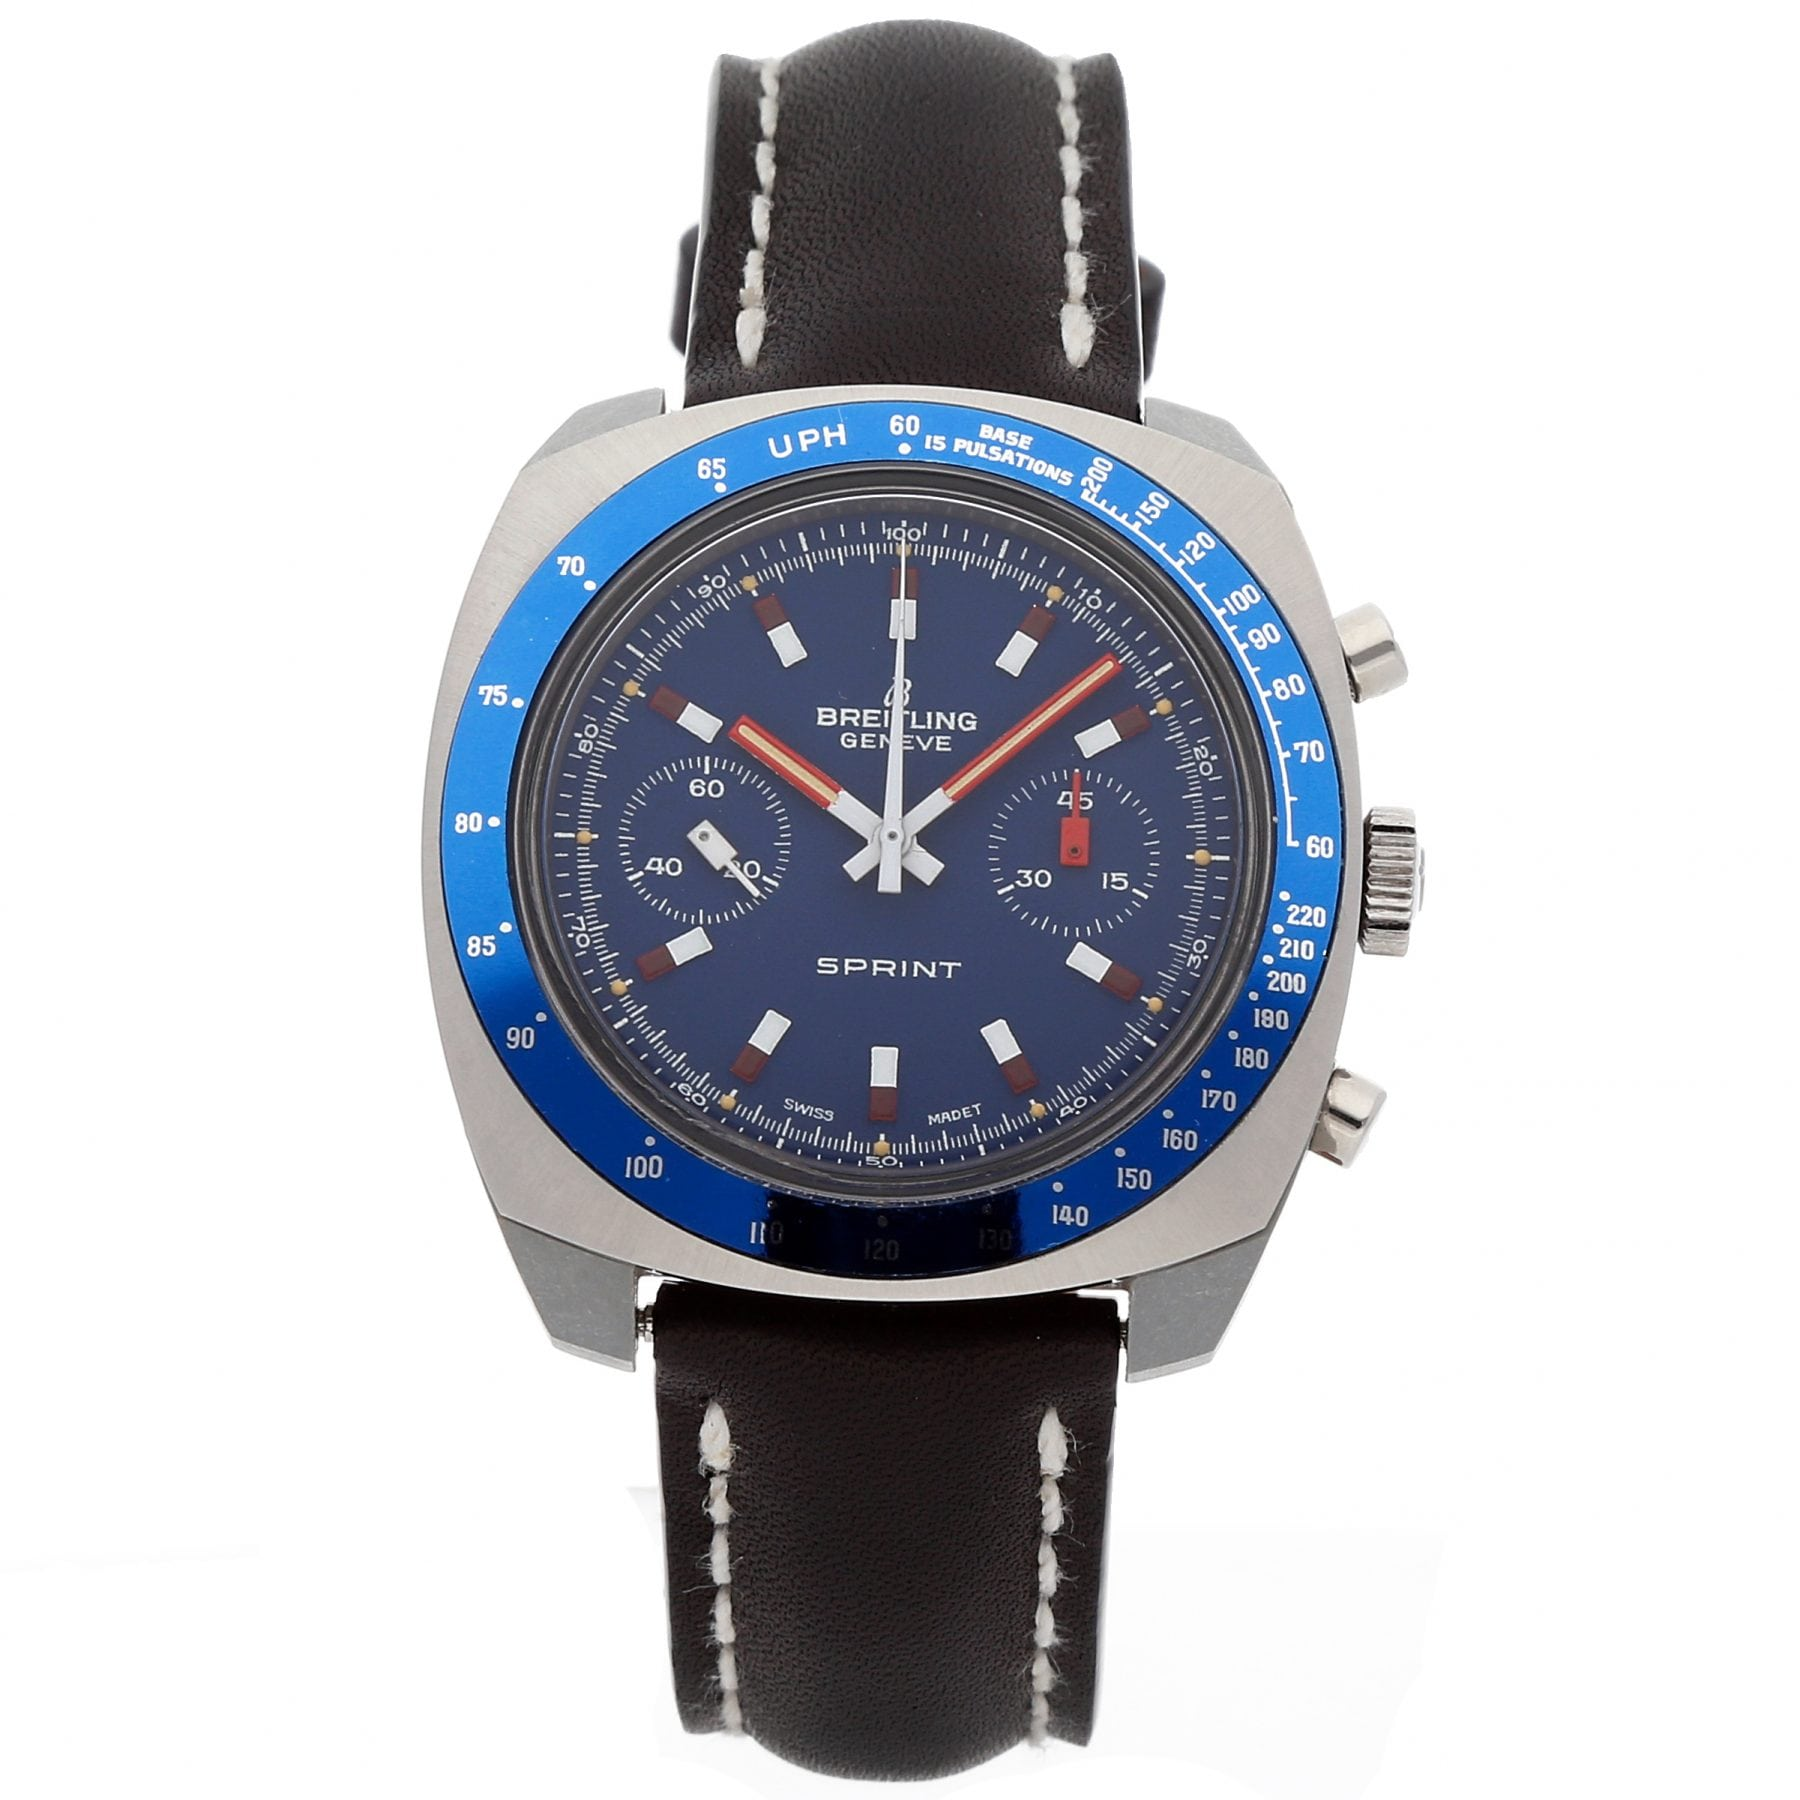 WatchBox Global Timepieces Breitling Sprint Watch